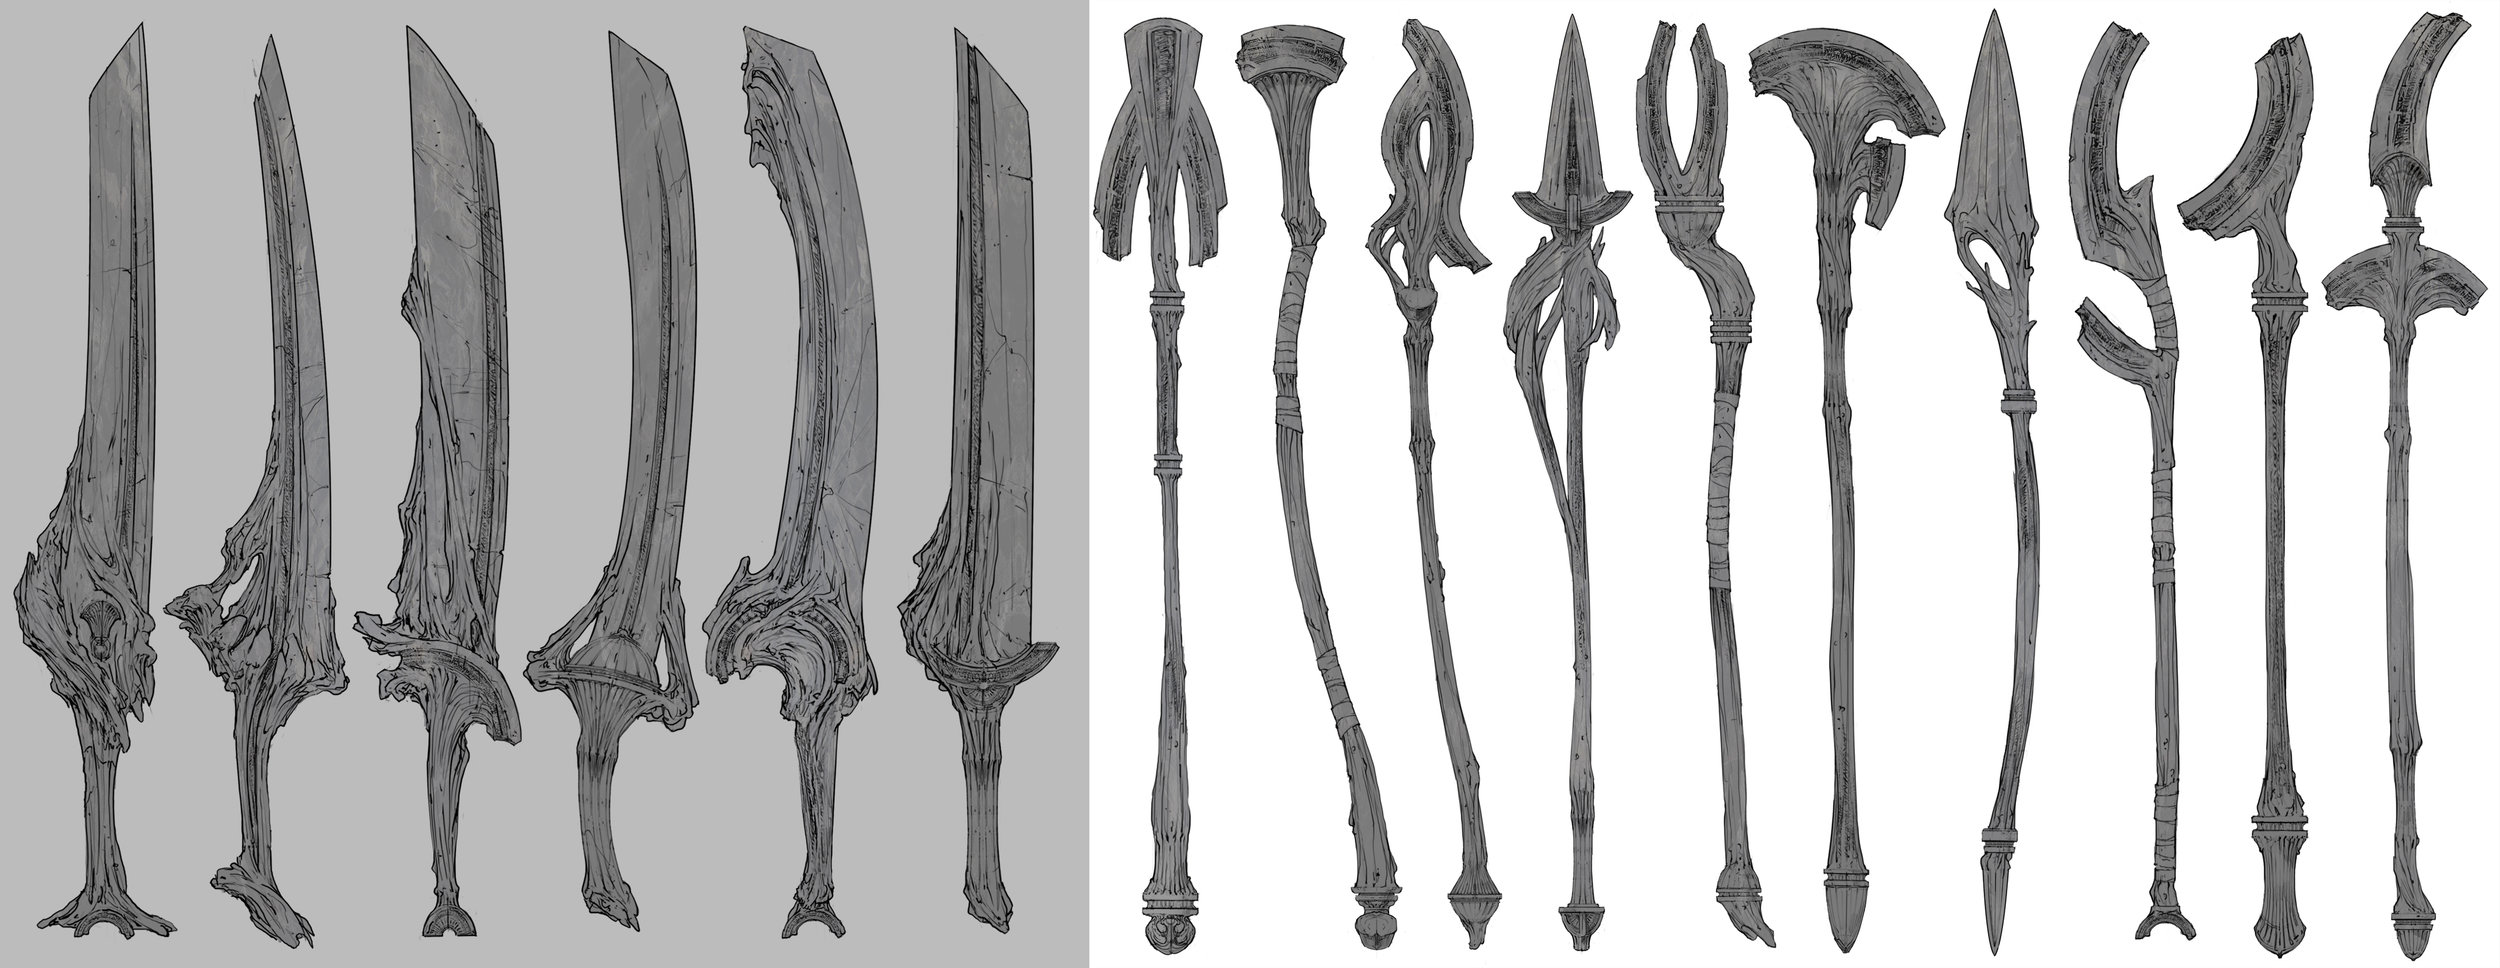 23 - Props Asura Weapons Swords + Spears.jpg